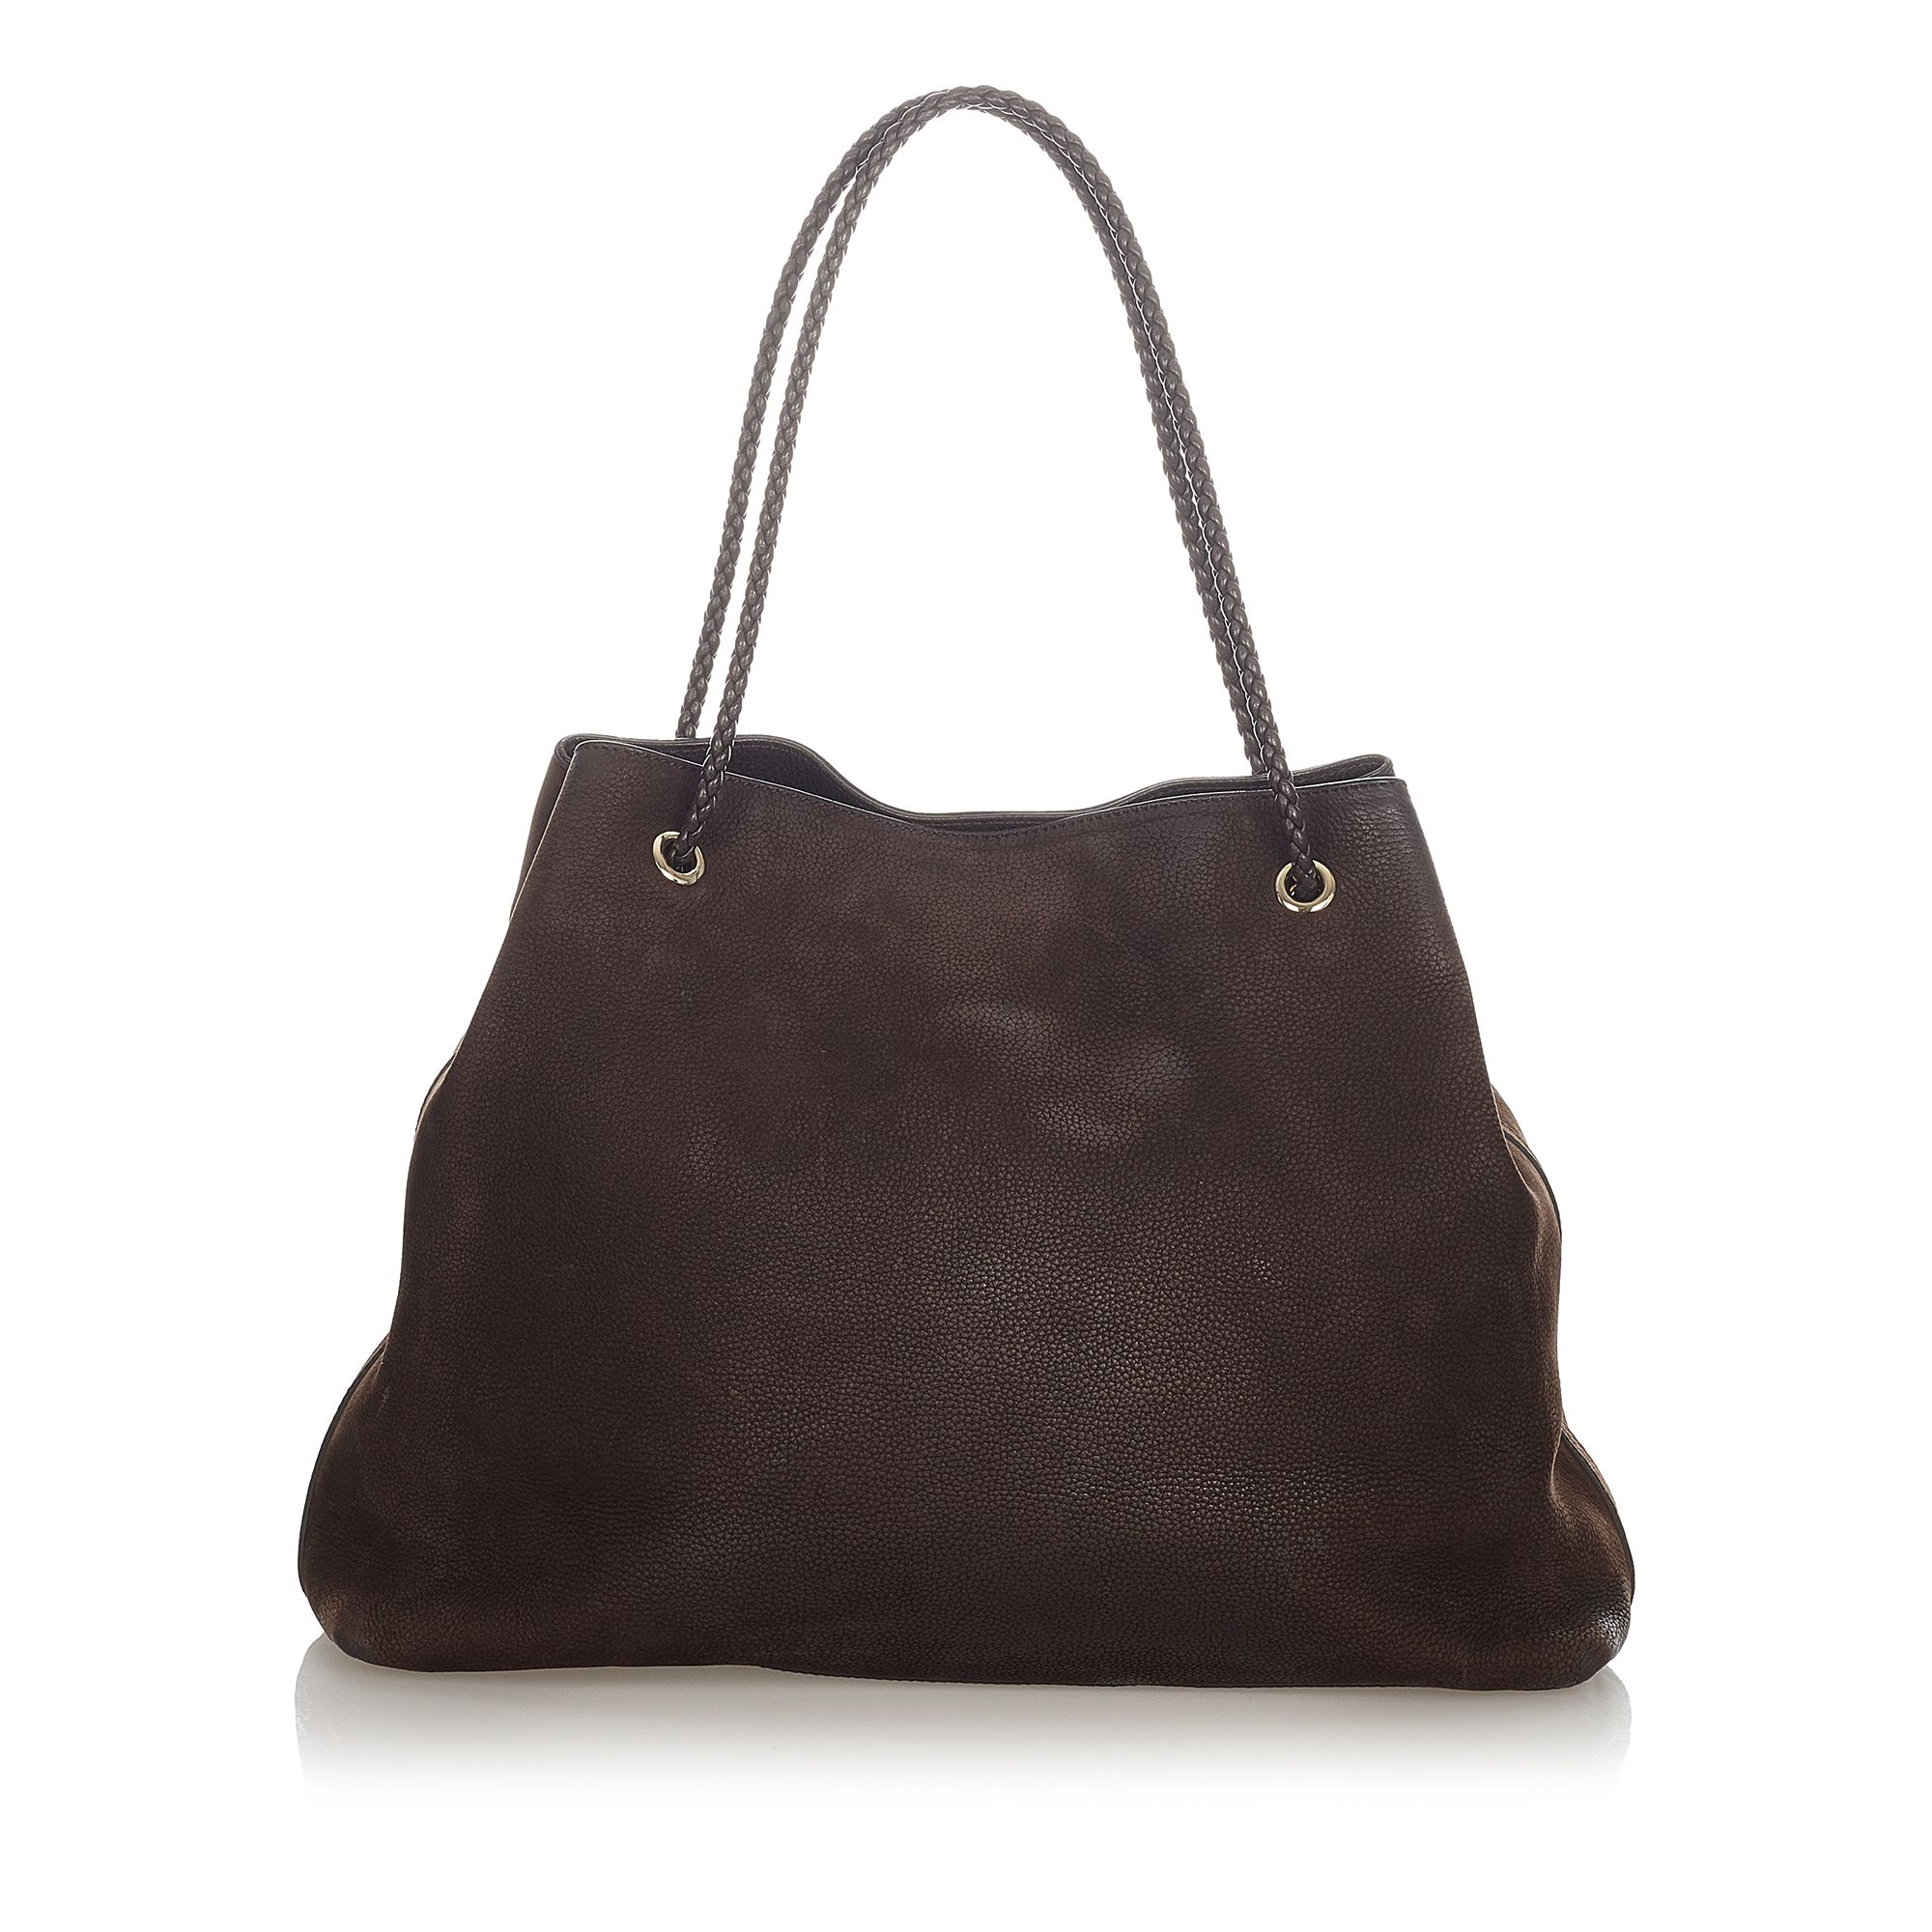 Vintage Gucci Gifford Leather Tote Bag Brown